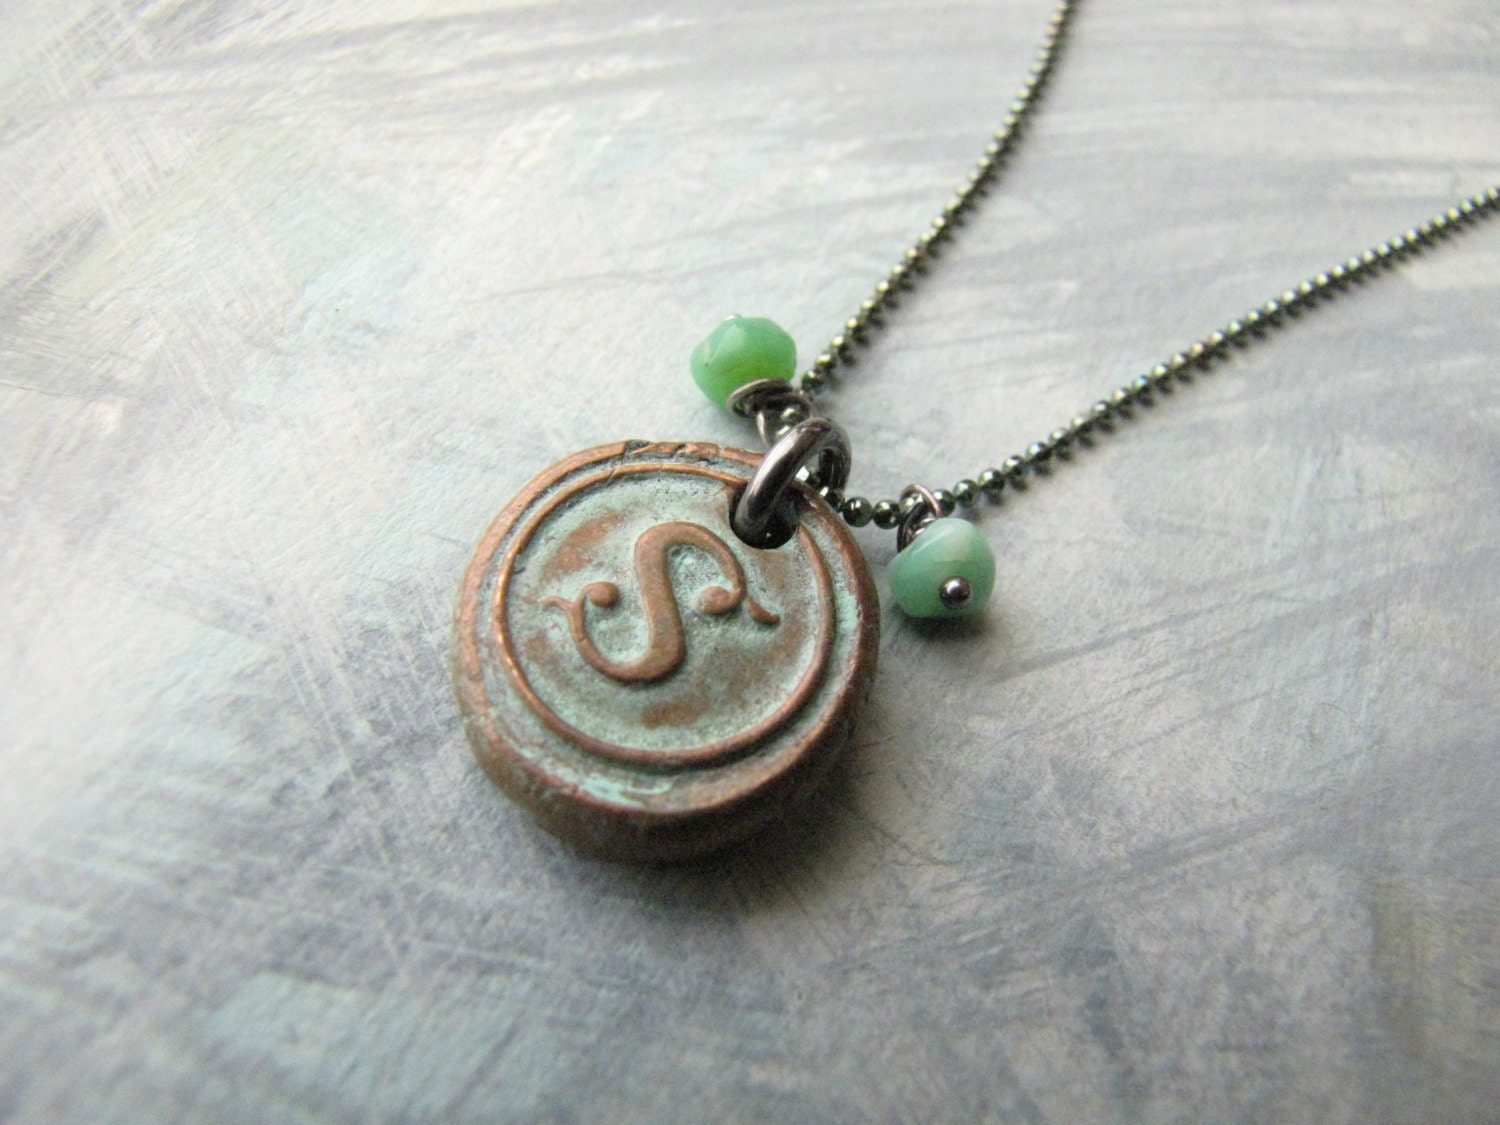 Copper Wax Seal  Initial Stamp with Aqua Patina and Turquoise -:-   Letter S - MossyCreekStudio